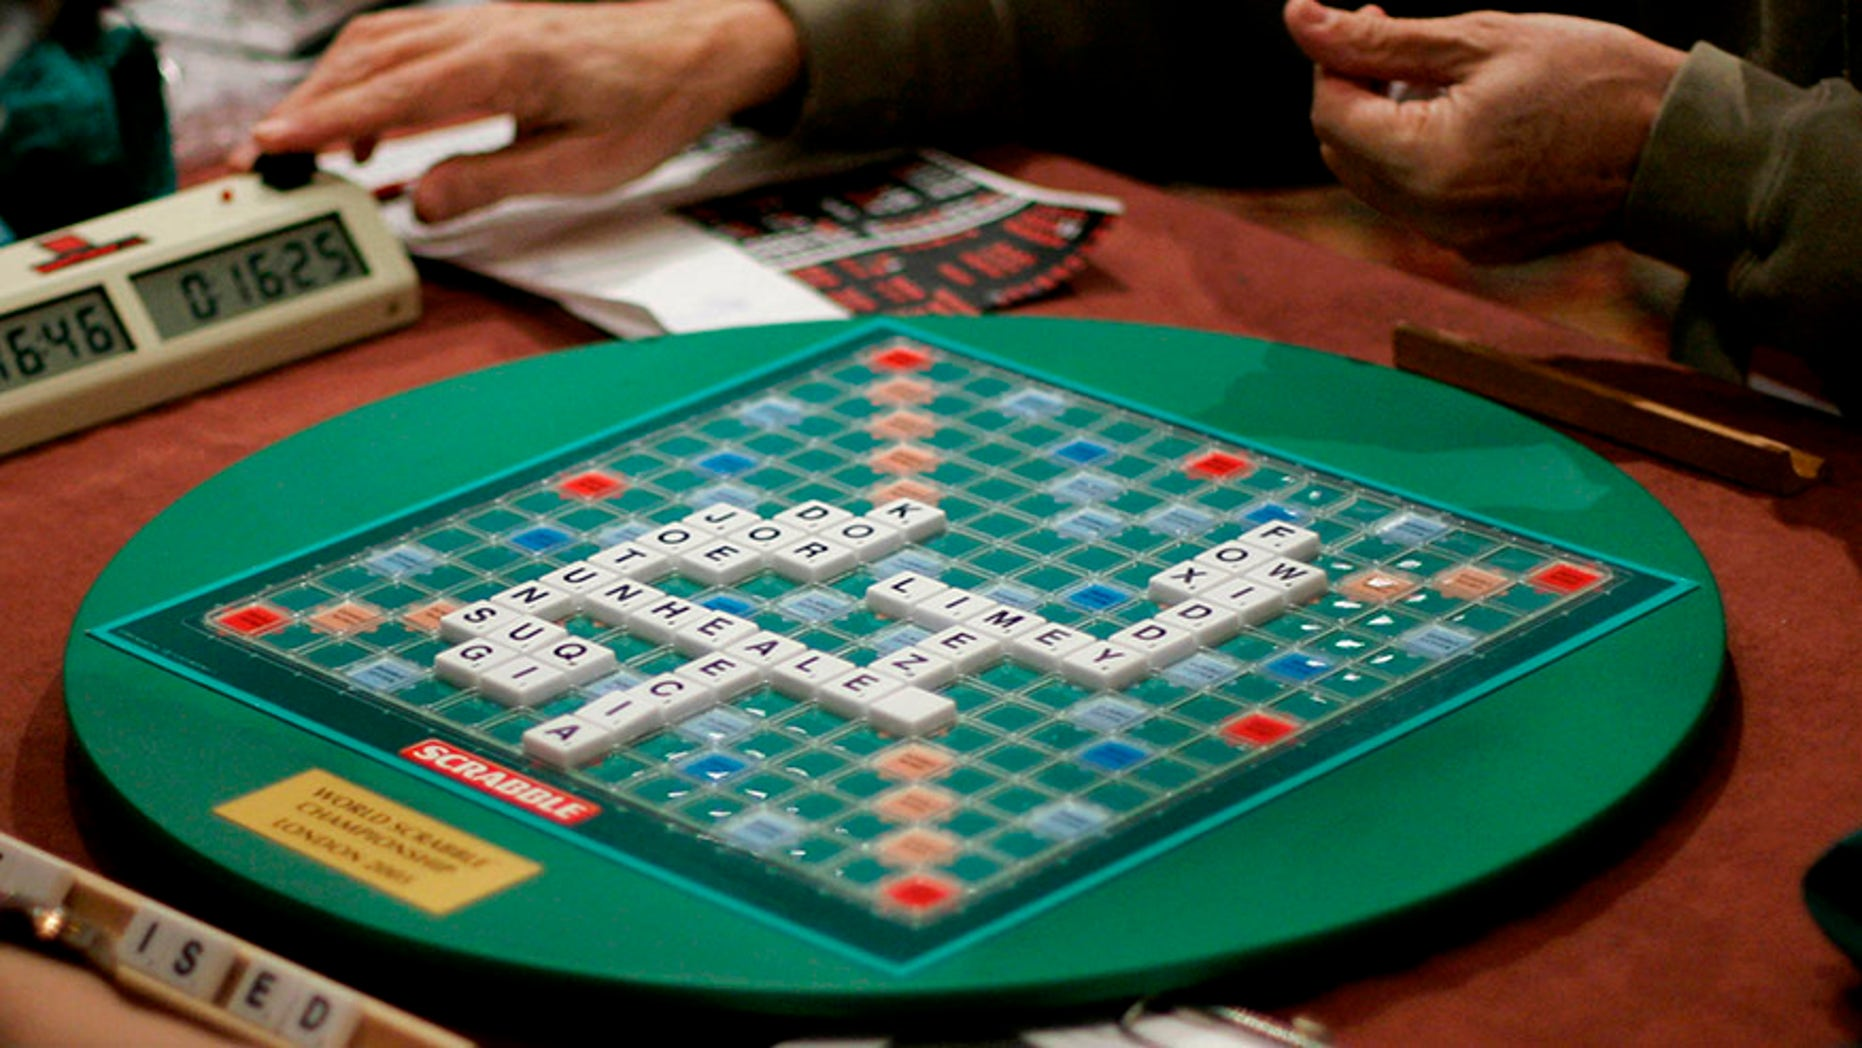 Competitors take part in the World Scrabble Championships at an hotel in northwest London, Nov. 17, 2005.